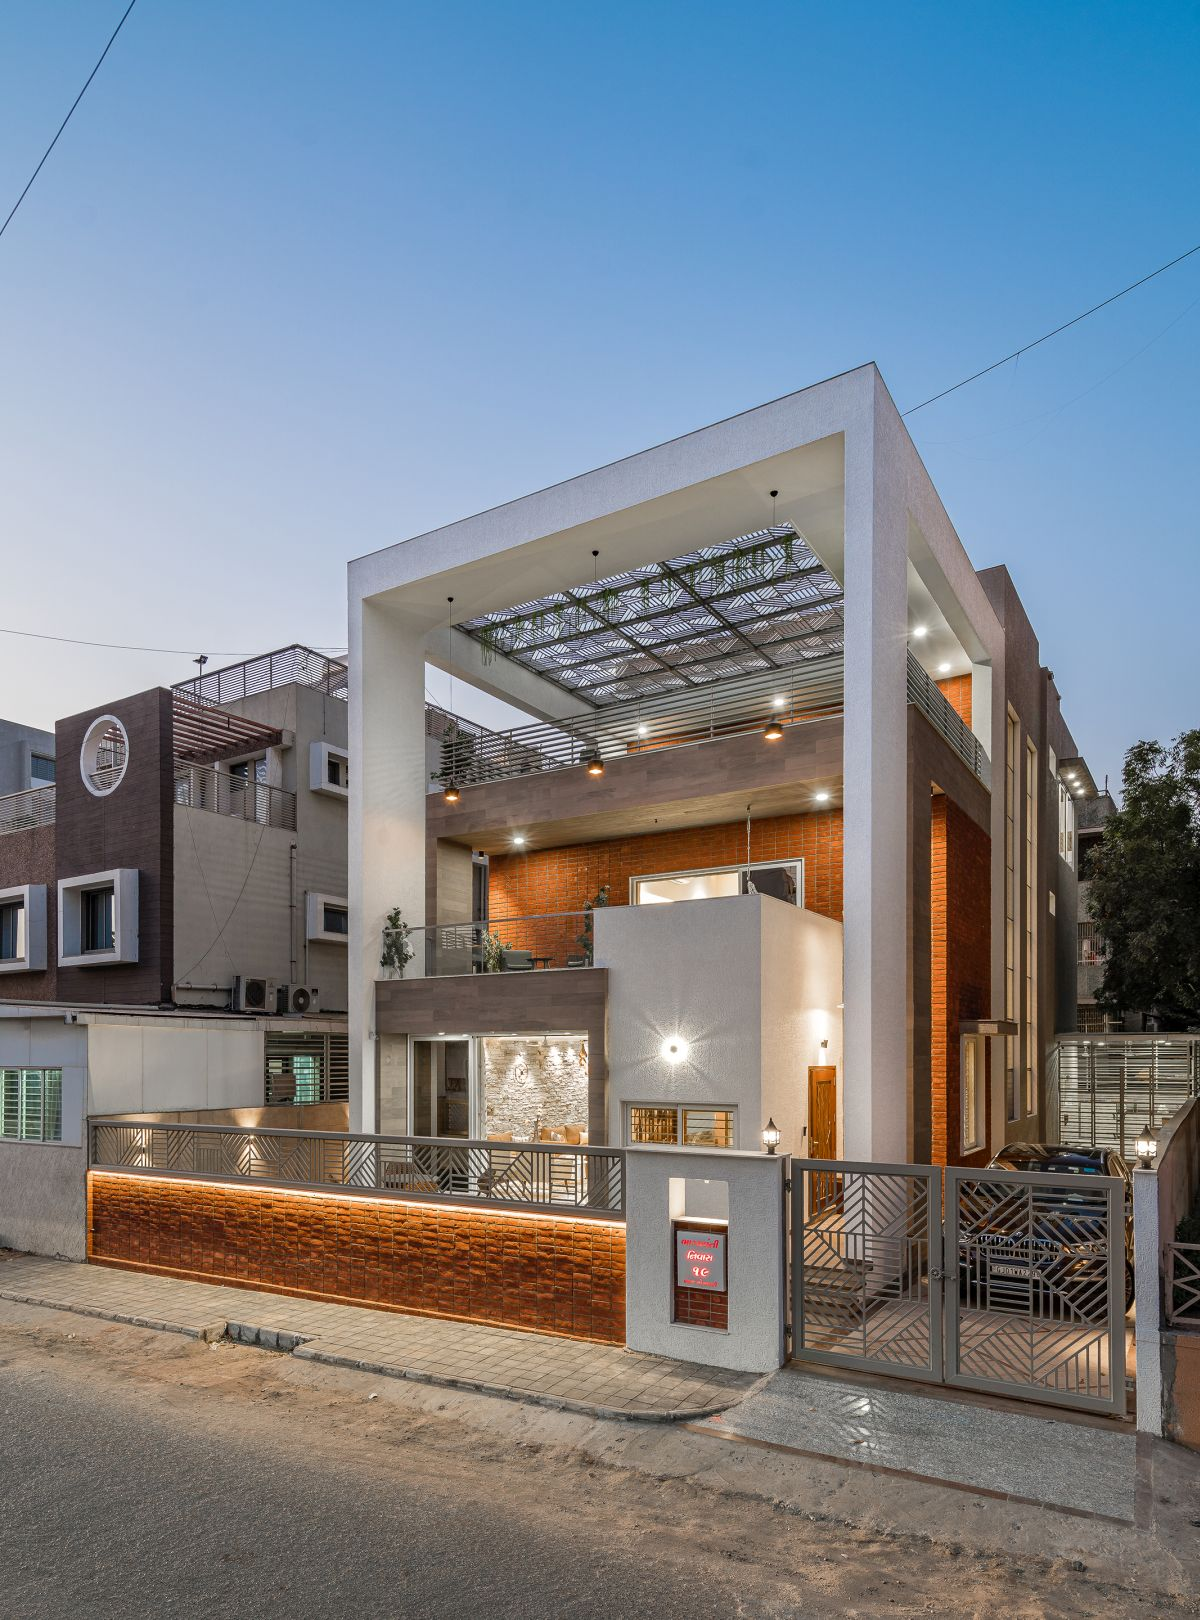 The Shaded House, at Ahmedabad, by Shayona Consultant 4